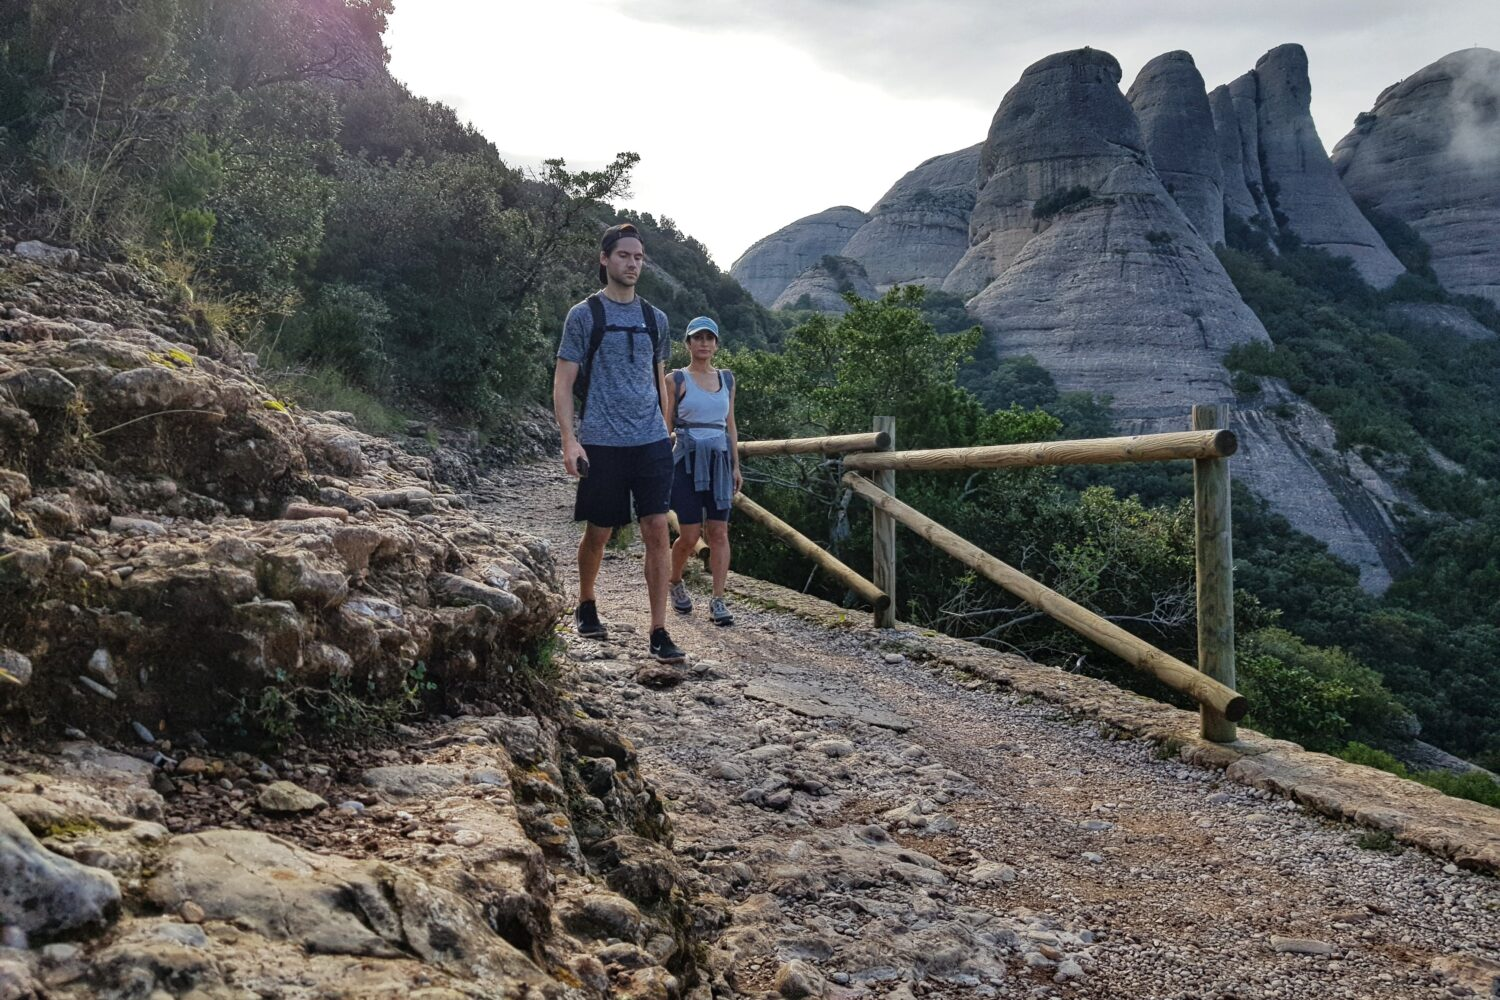 Hiking trails in Montserrat